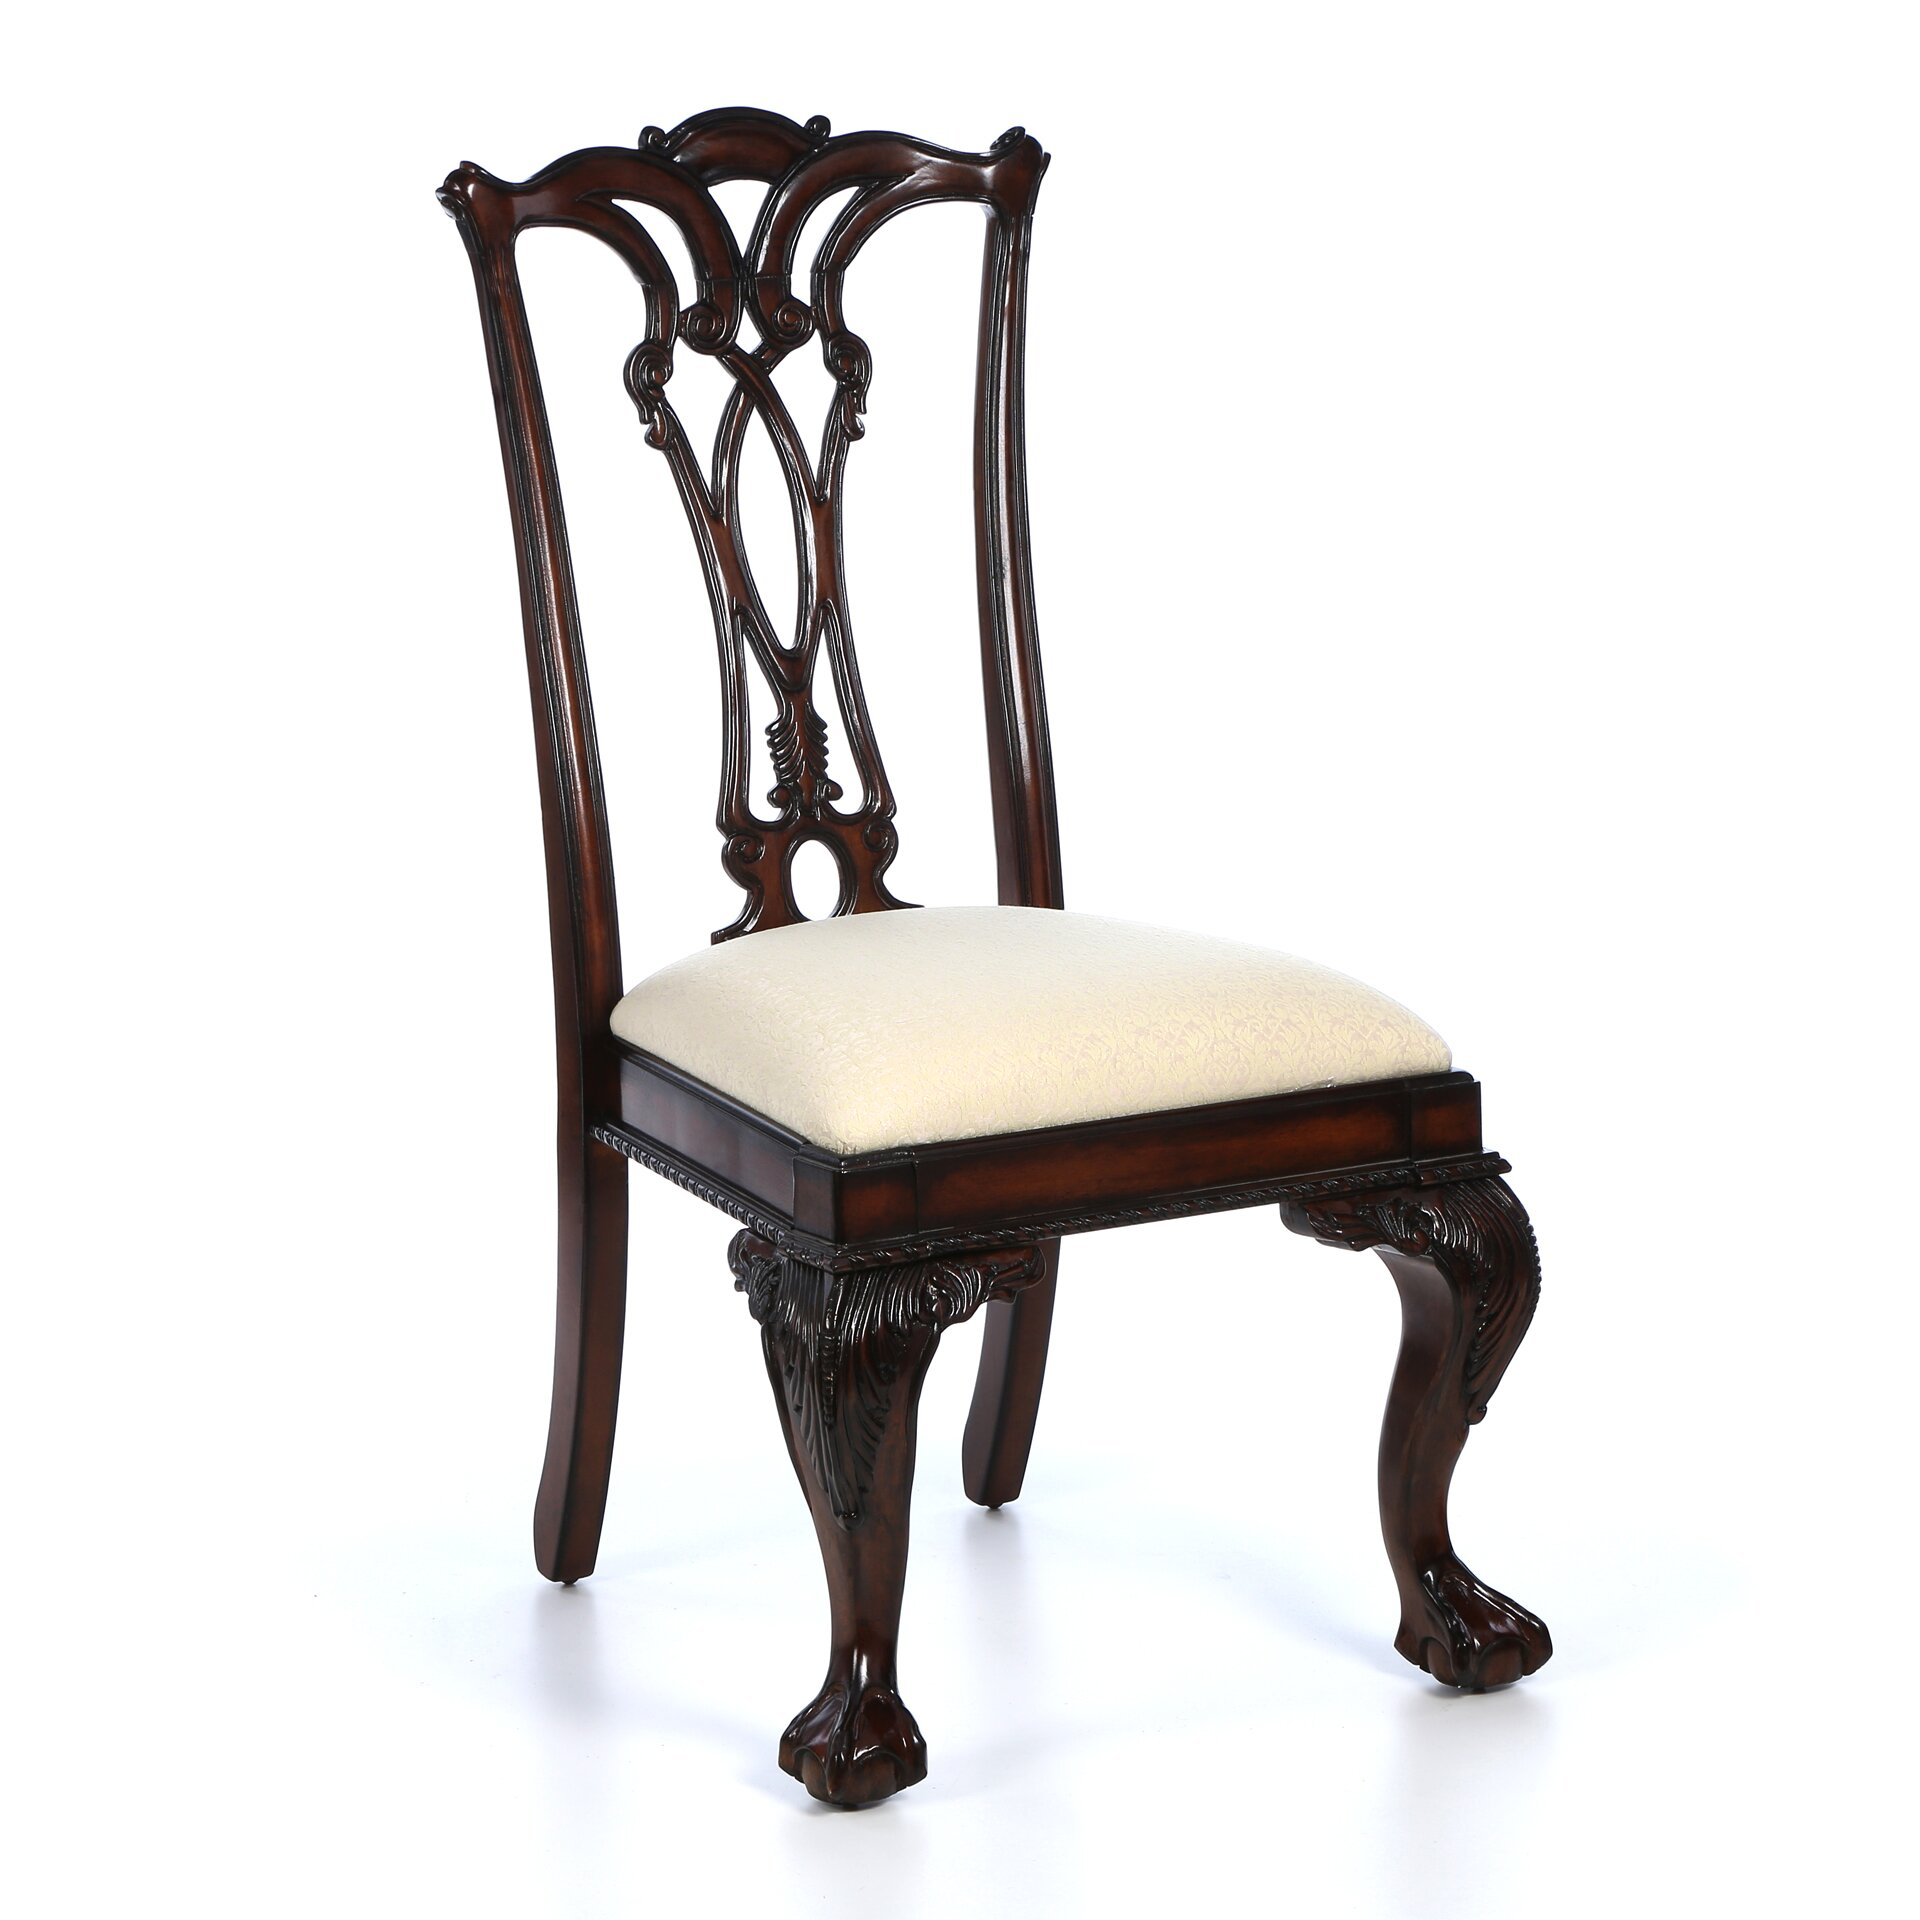 Hooker Furniture Bedford Row Ball Claw Desk Chair In